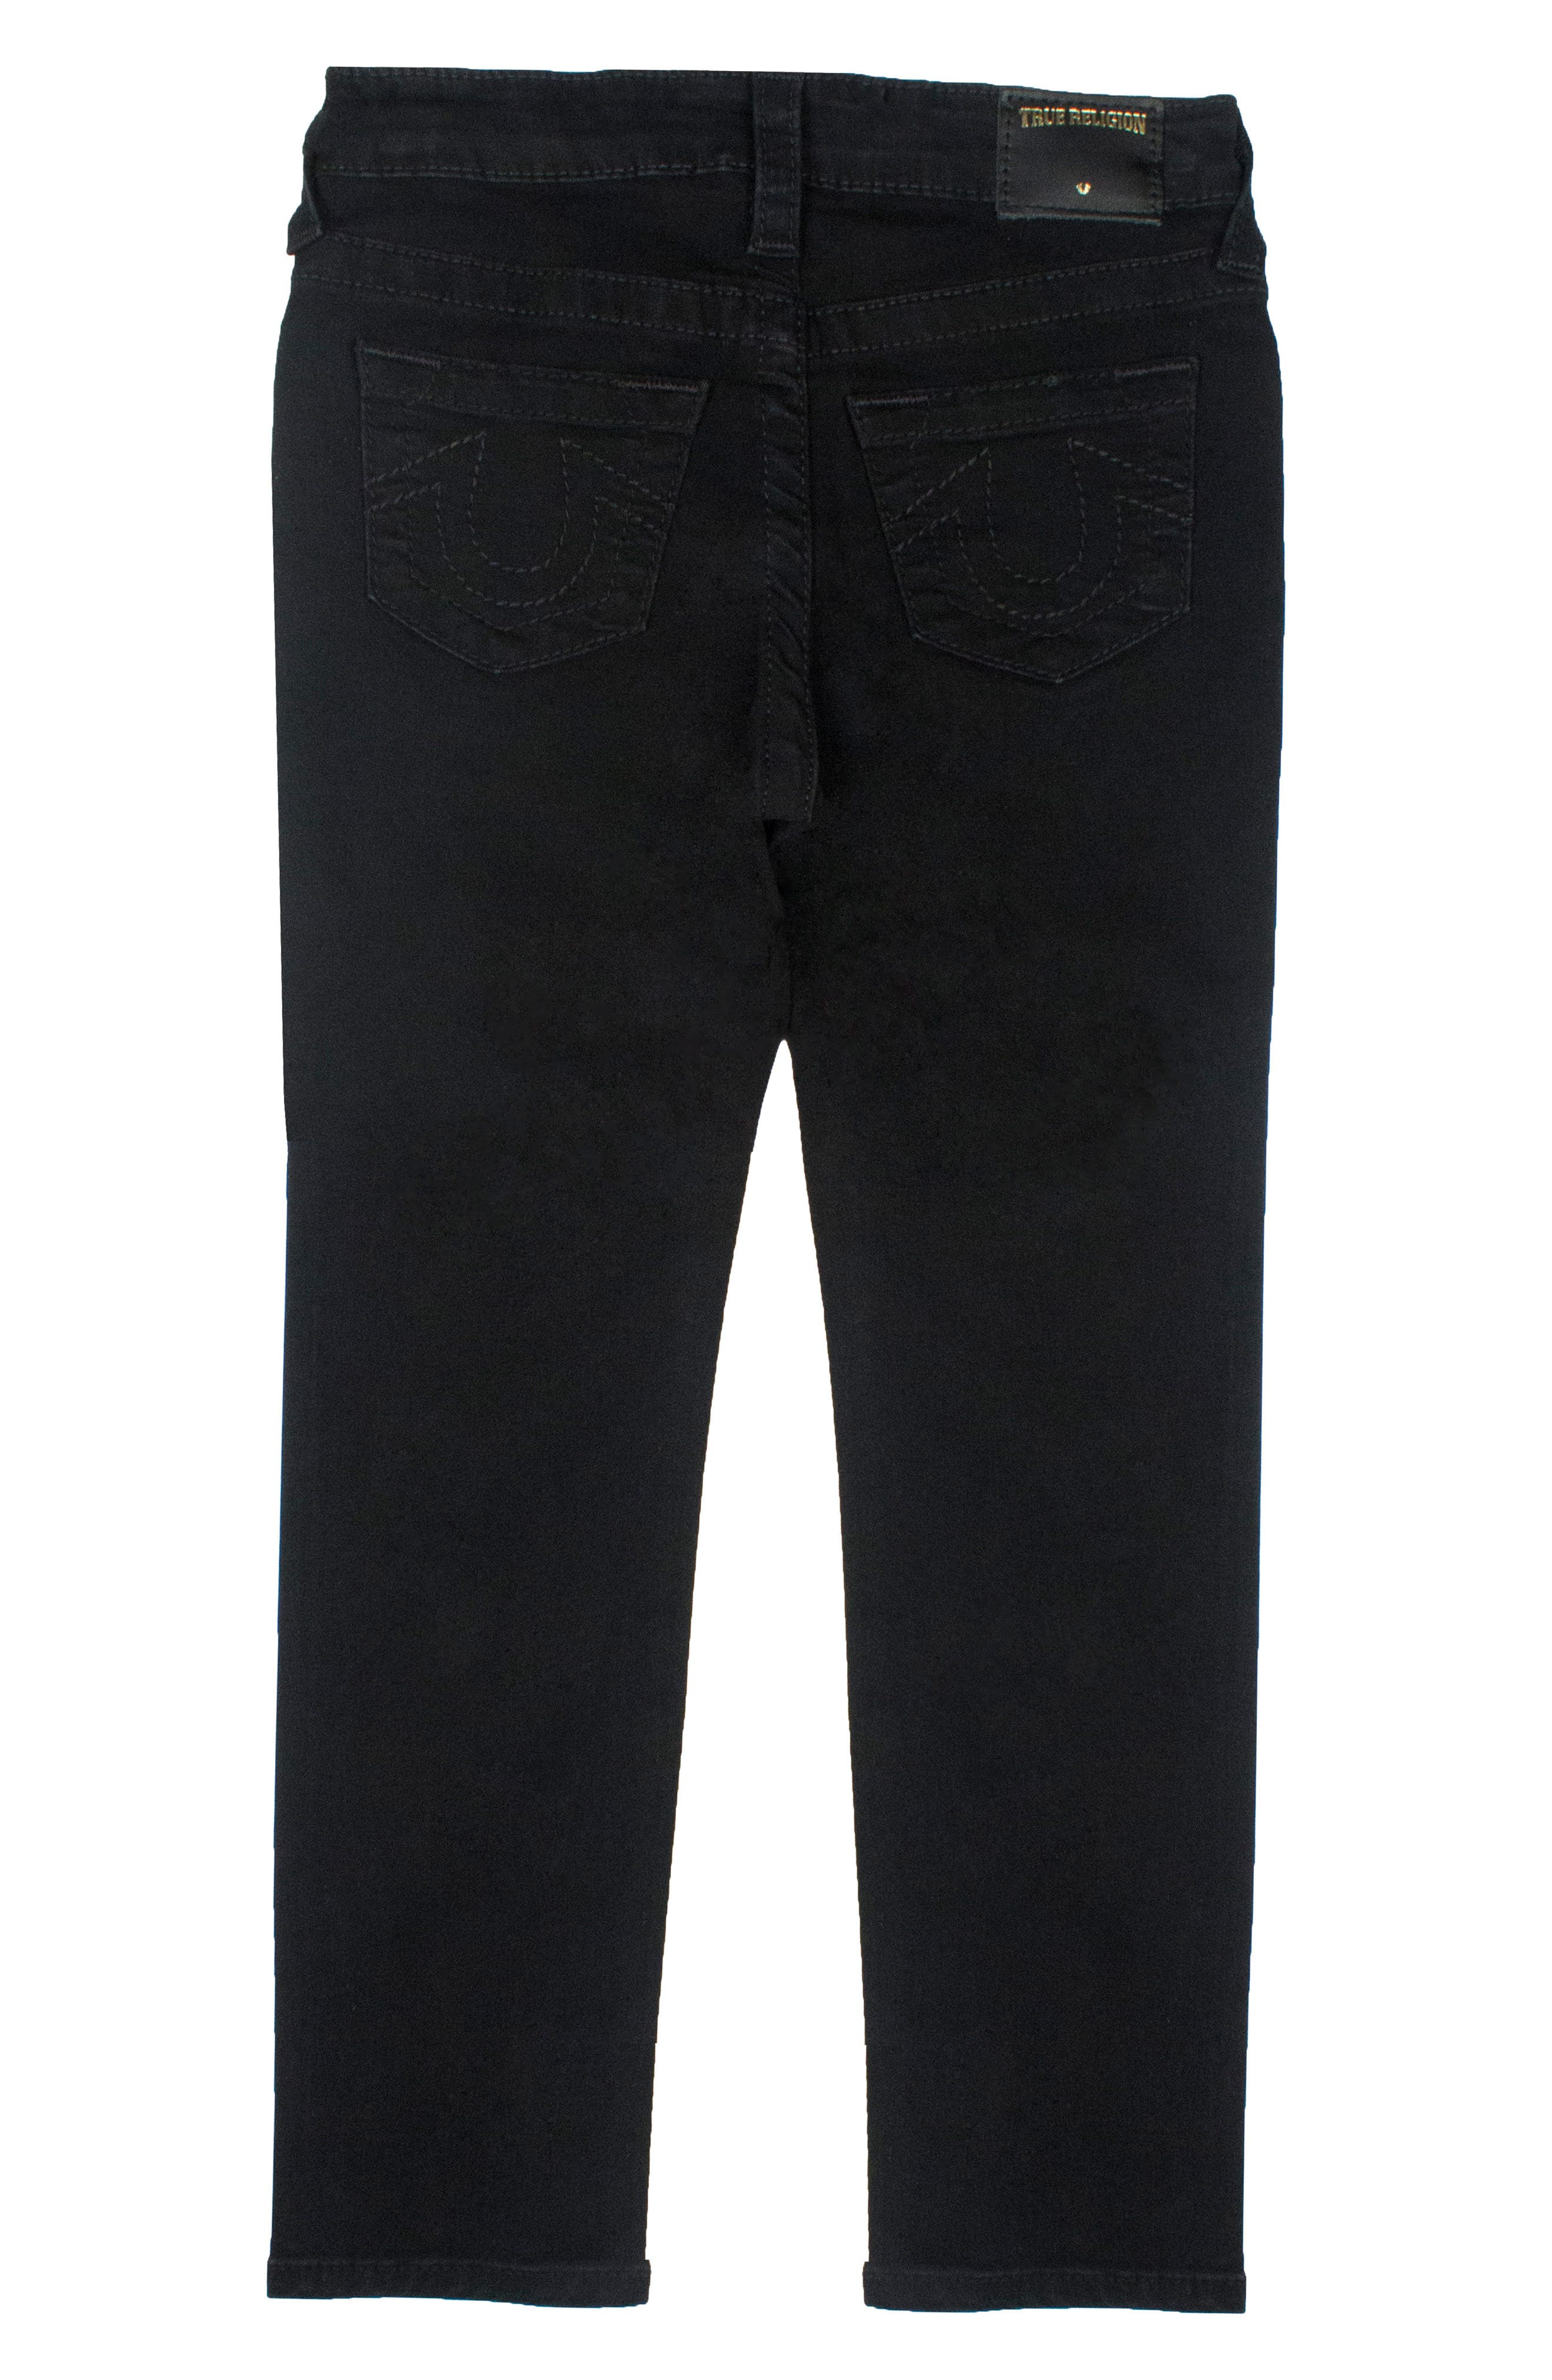 Geno Single End Jeans,                             Alternate thumbnail 2, color,                             001